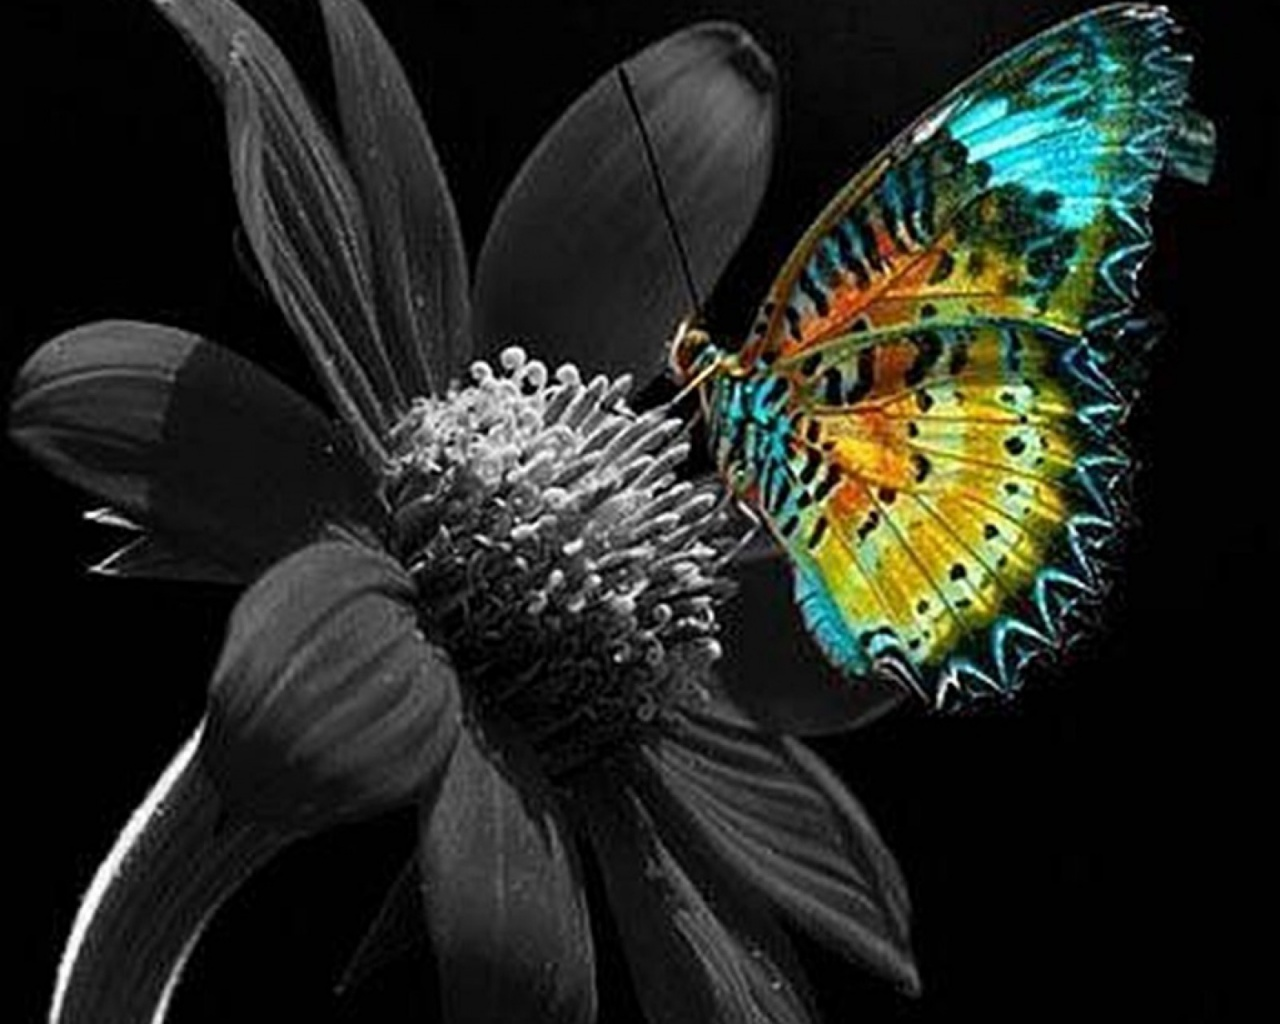 1280x1024 Calico Butterfly Plain Flower Desktop PC And Mac Wallpaper